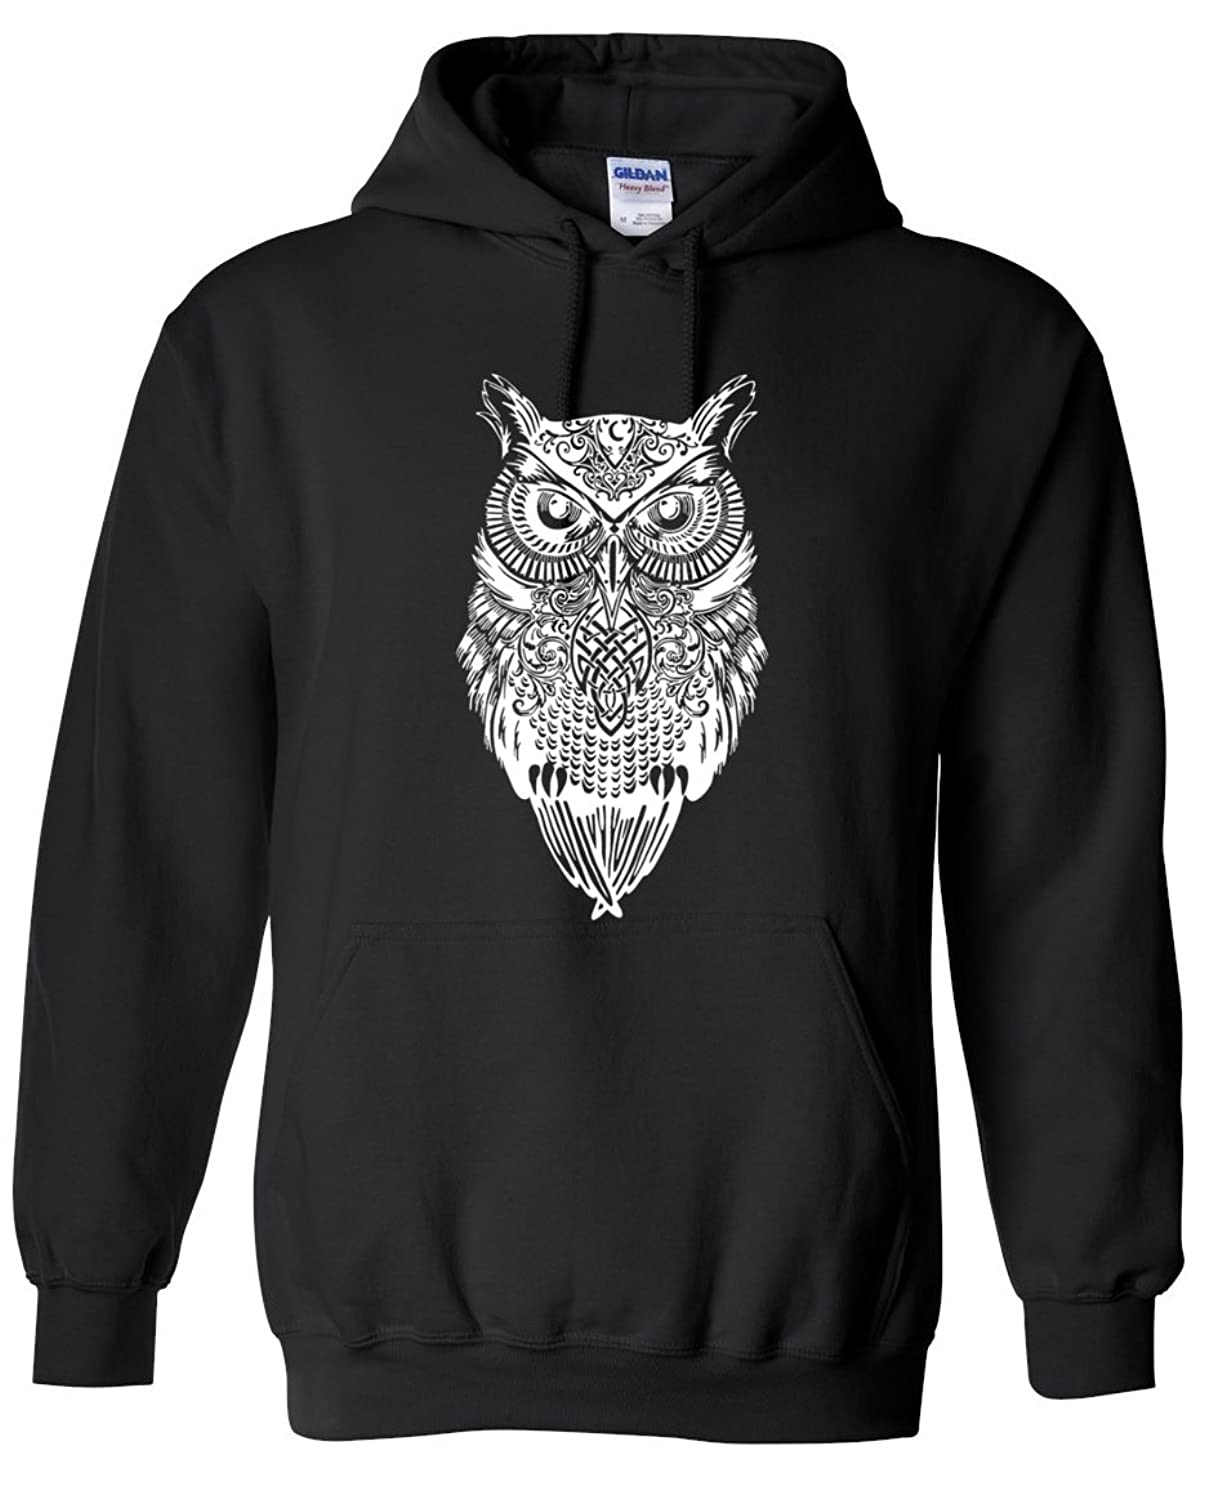 Adult Casual Fashion Graphic Owl White Hoodie Hooded Sweater